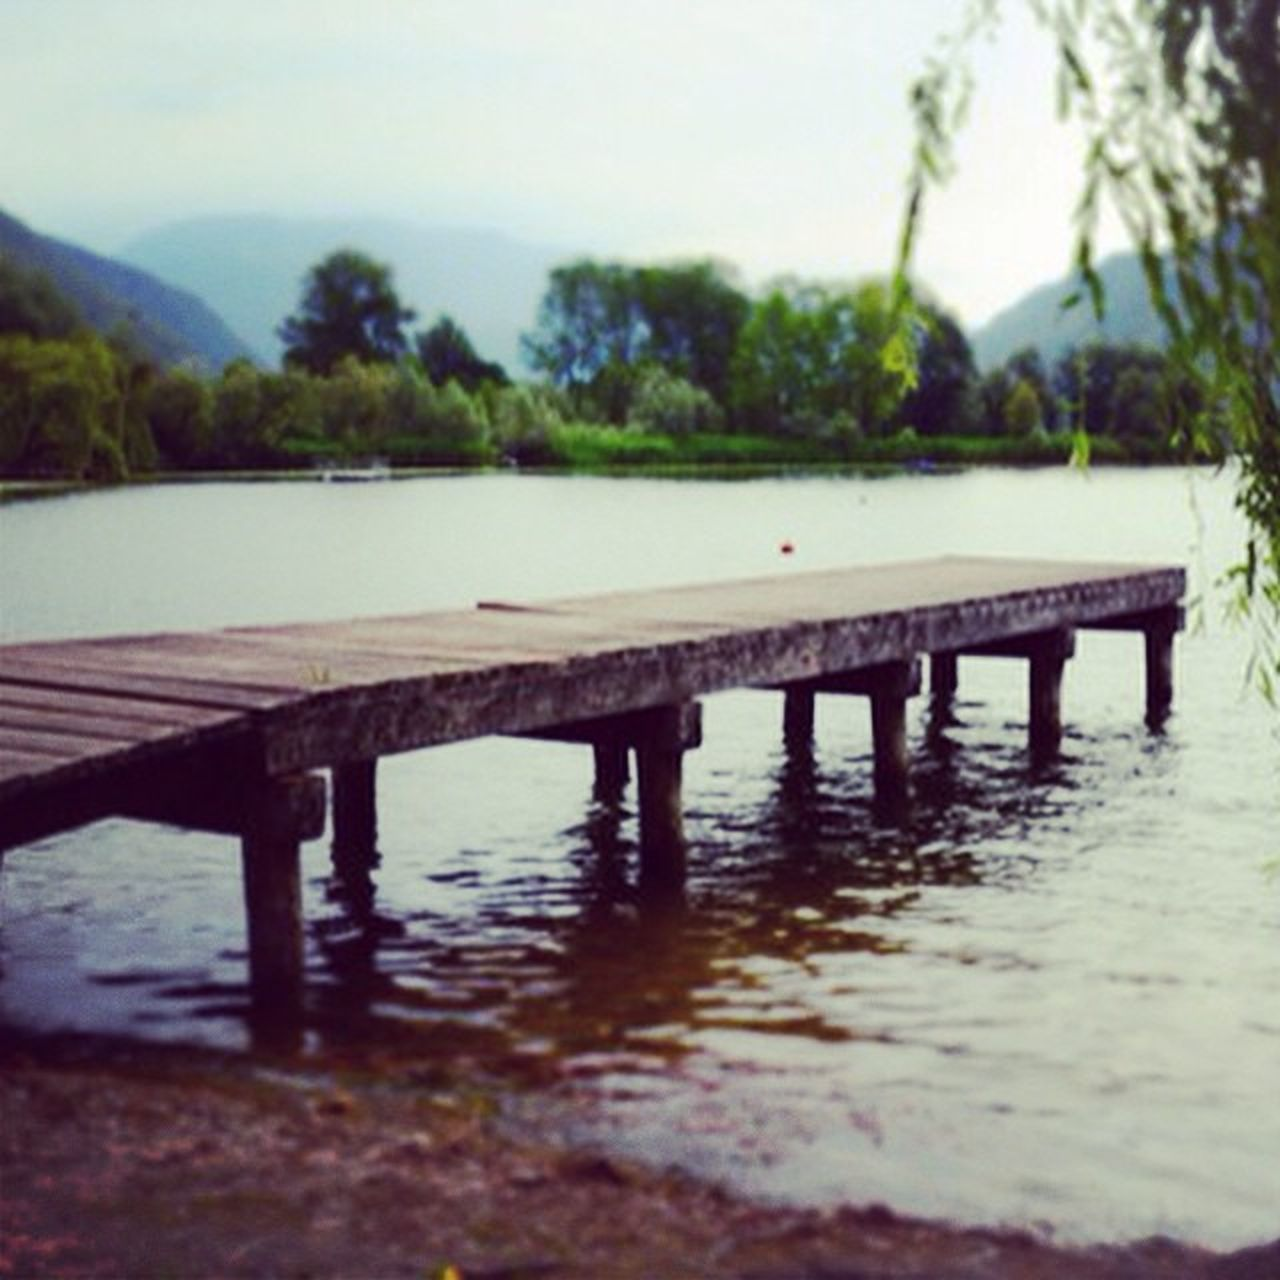 water, lake, tranquil scene, tree, day, nature, no people, tranquility, outdoors, scenics, beauty in nature, sky